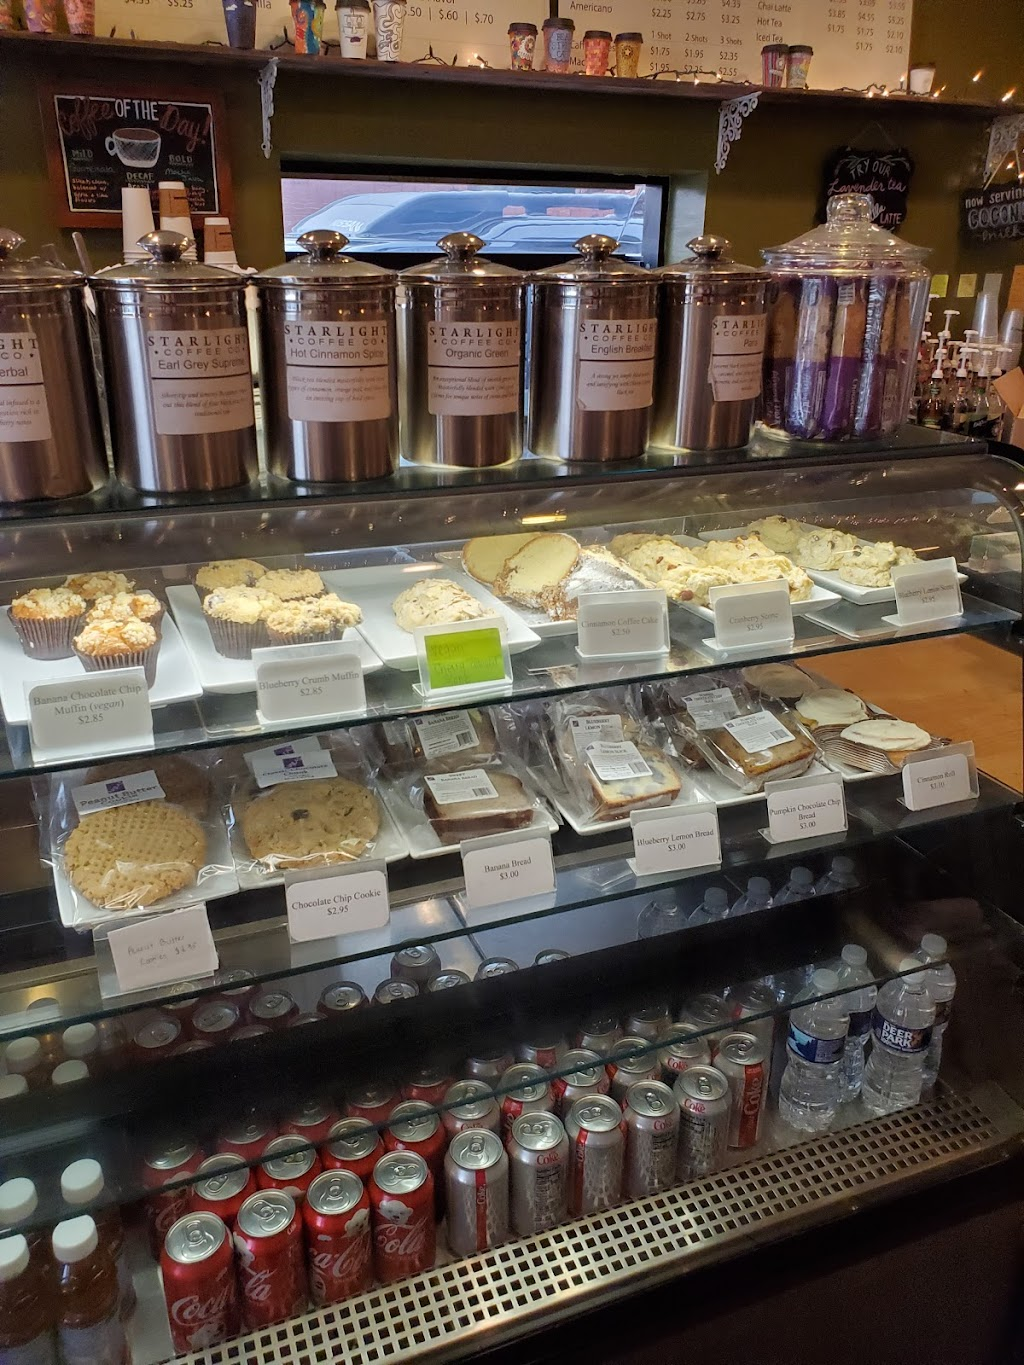 Starlight Coffee Co. - cafe  | Photo 1 of 9 | Address: 101 Lafollette Station Dr, Floyds Knobs, IN 47119, USA | Phone: (812) 923-1404